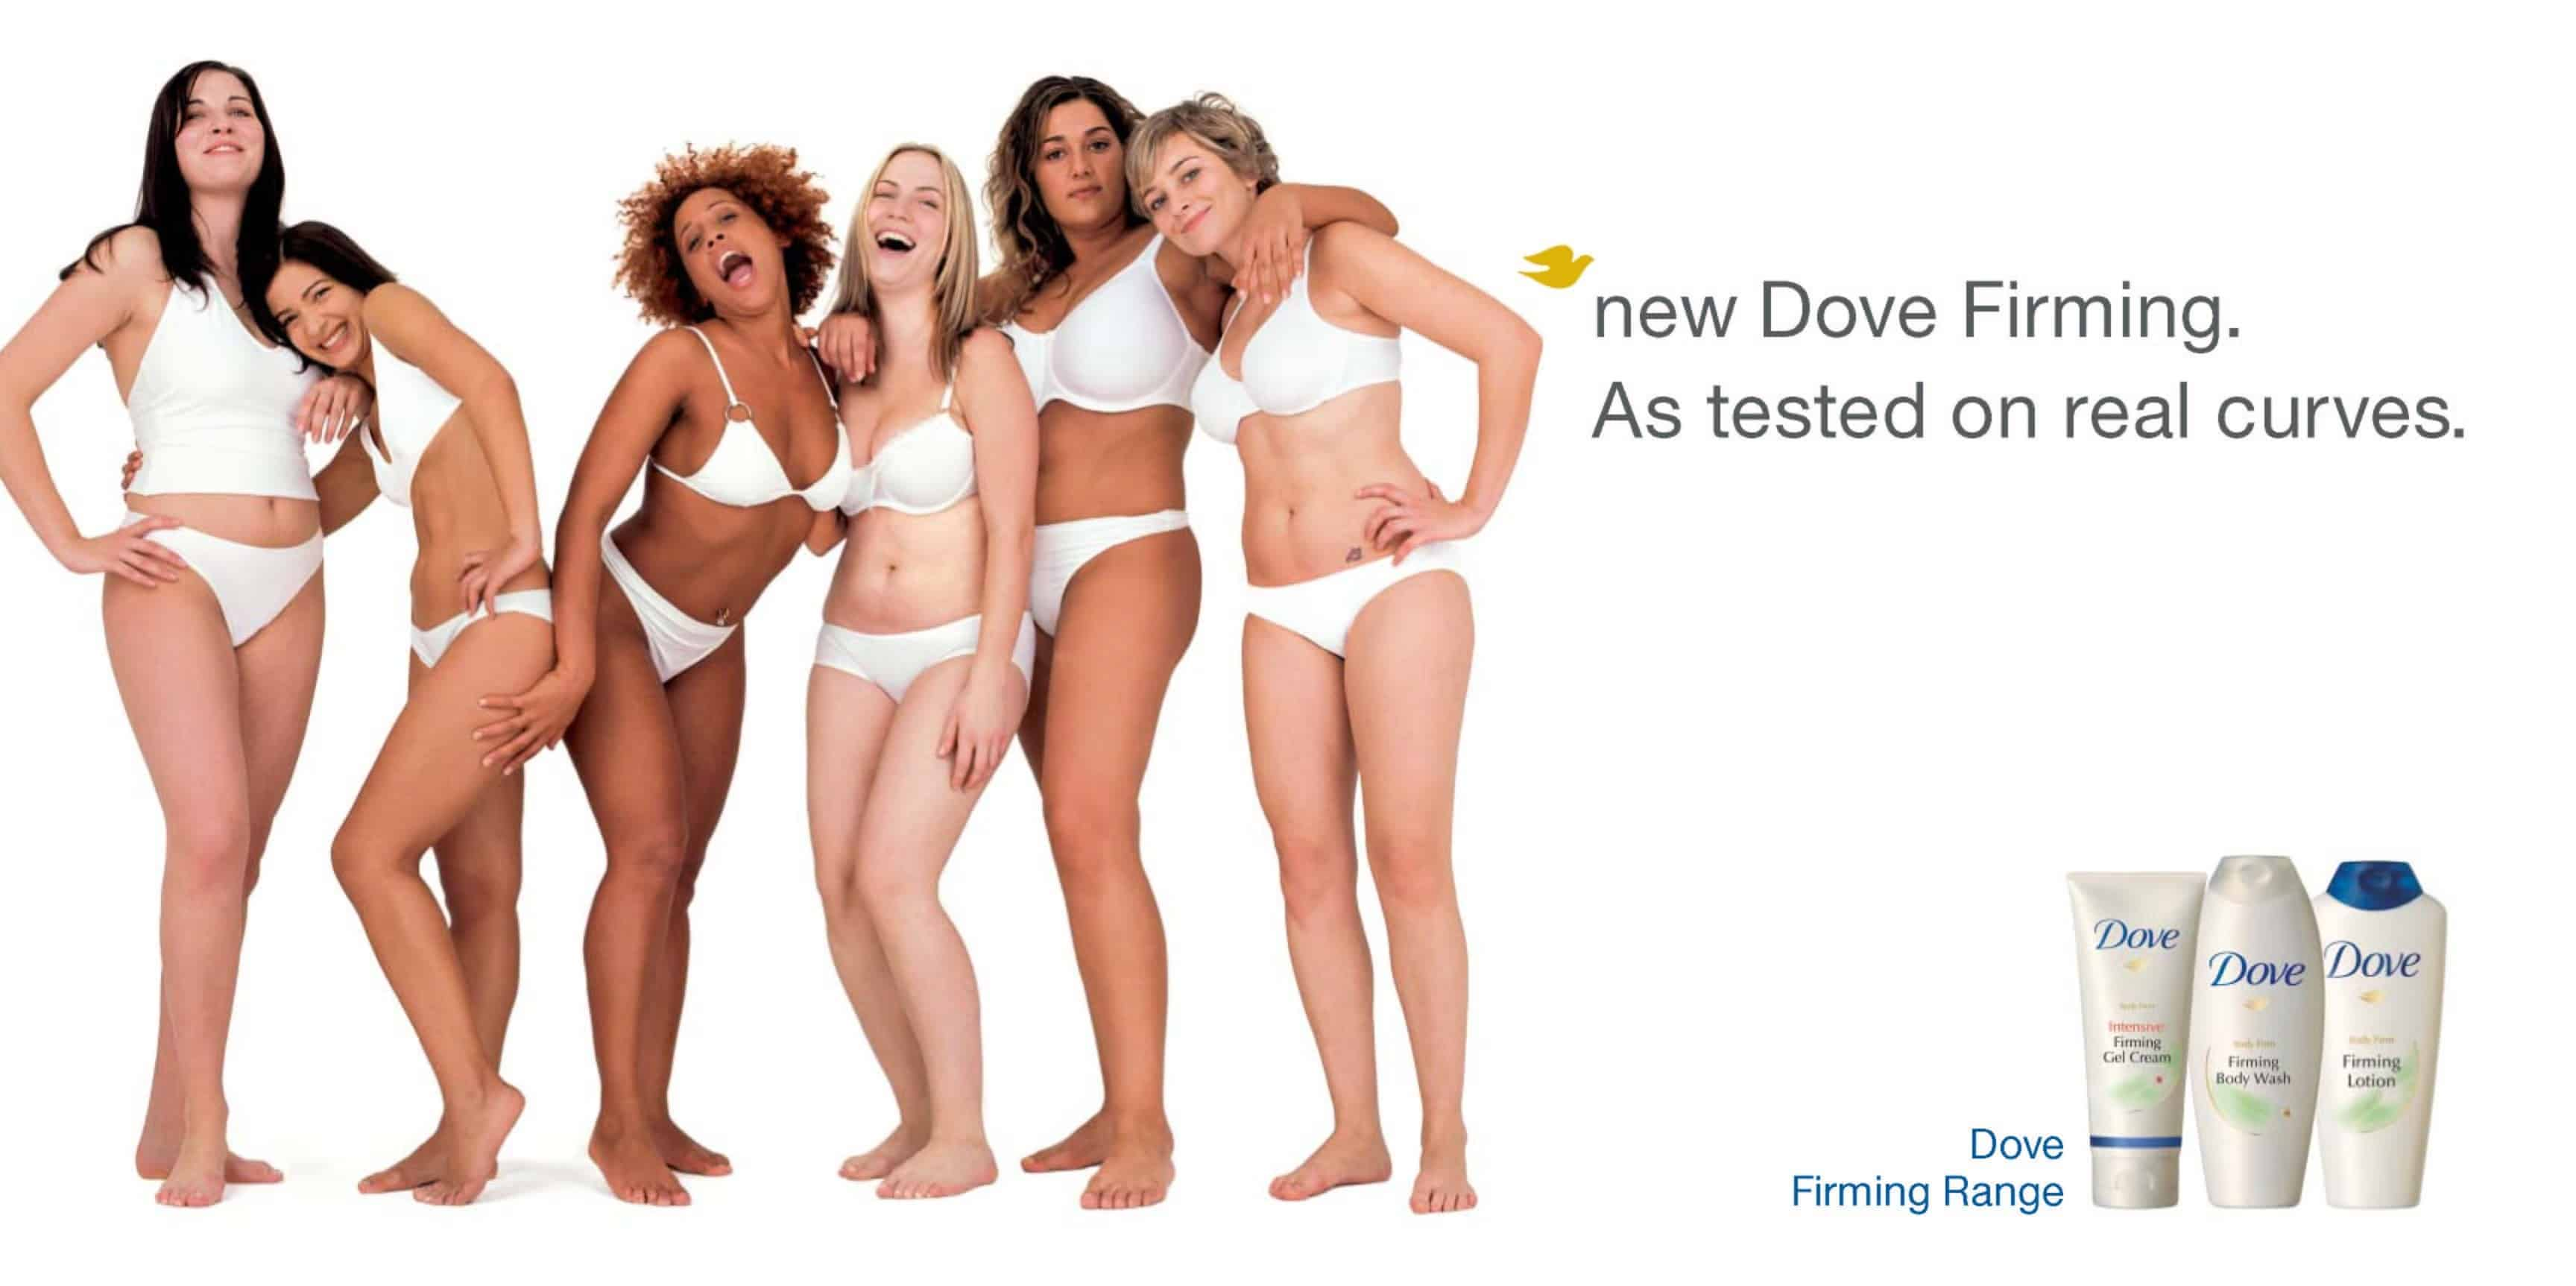 Dove Campaign For Real Beauty Marketing Campaign